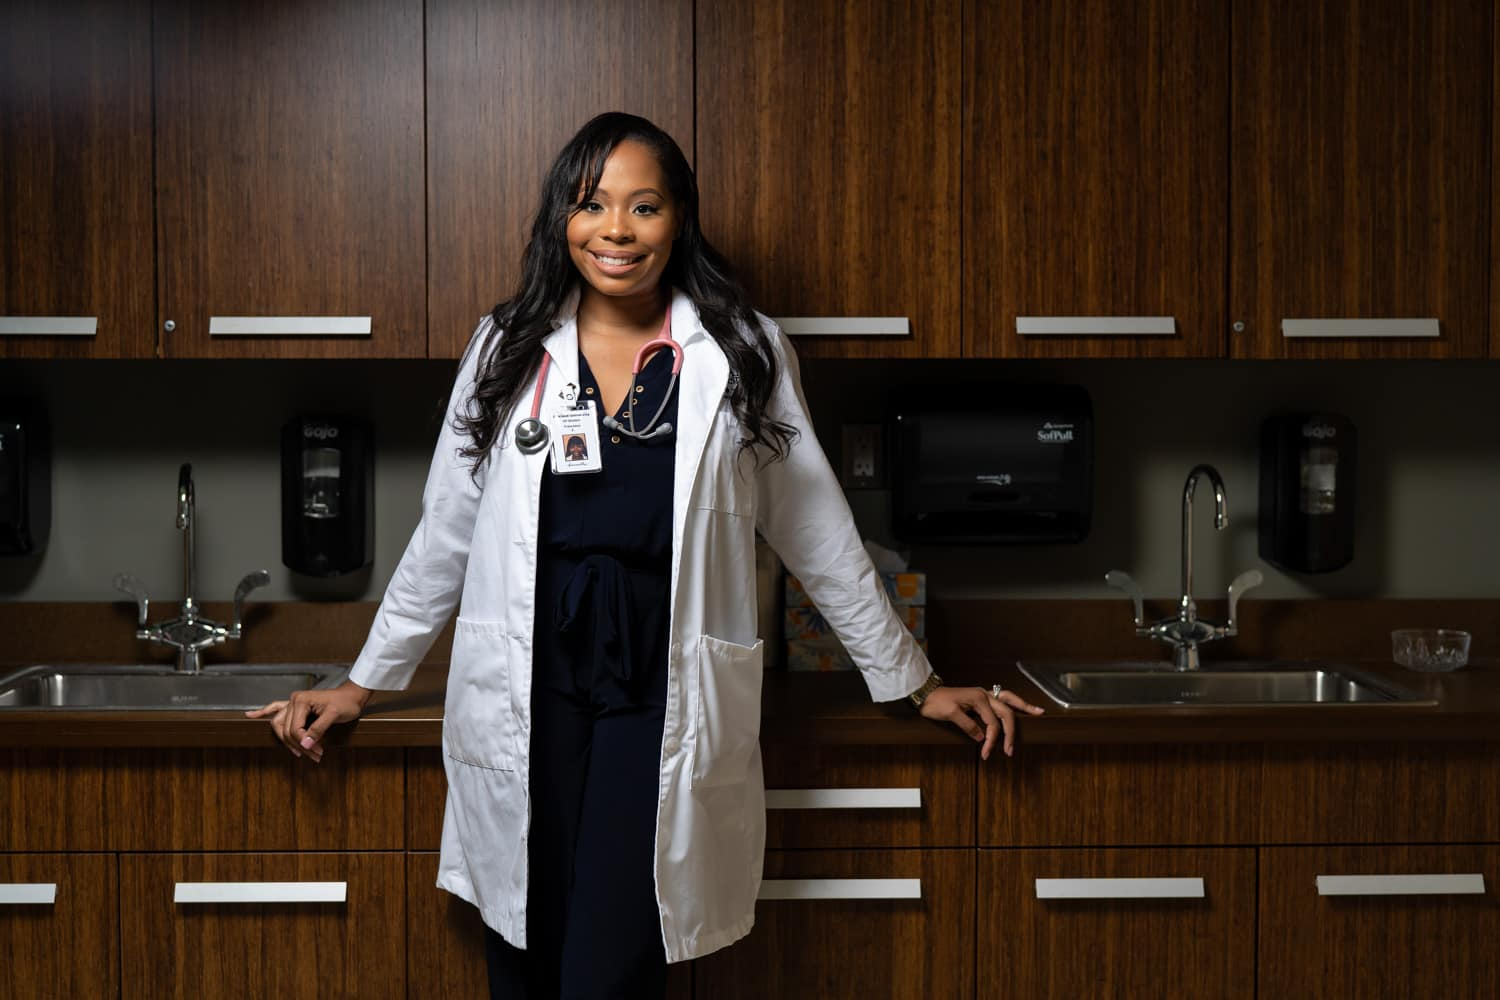 nurse practitioner in front of cabinets